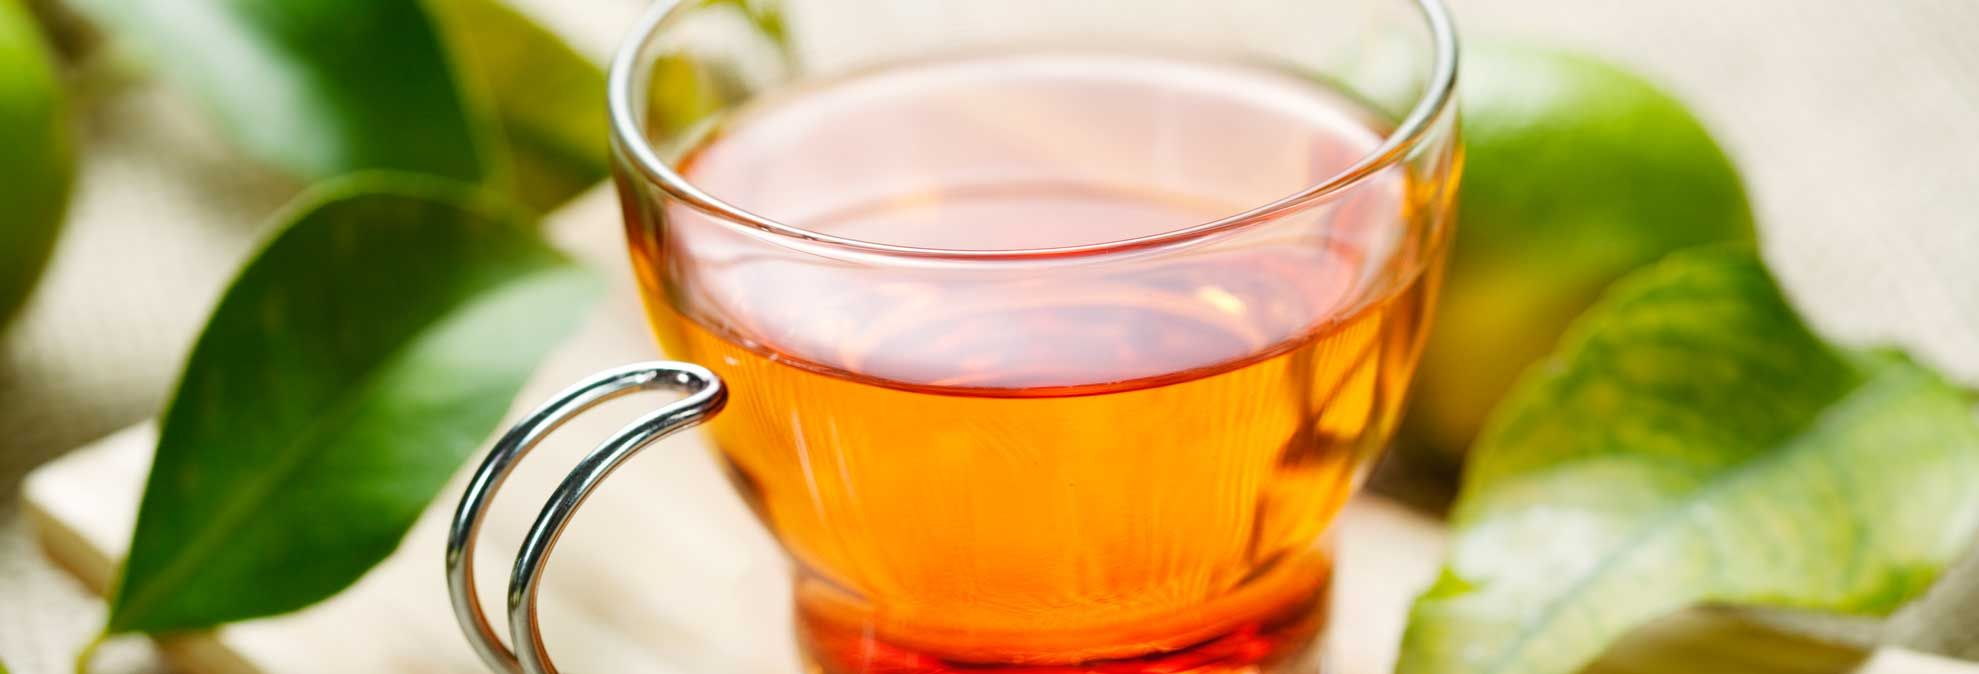 Consumer Reports Reviews The Surprising Health Benefits Of Tea